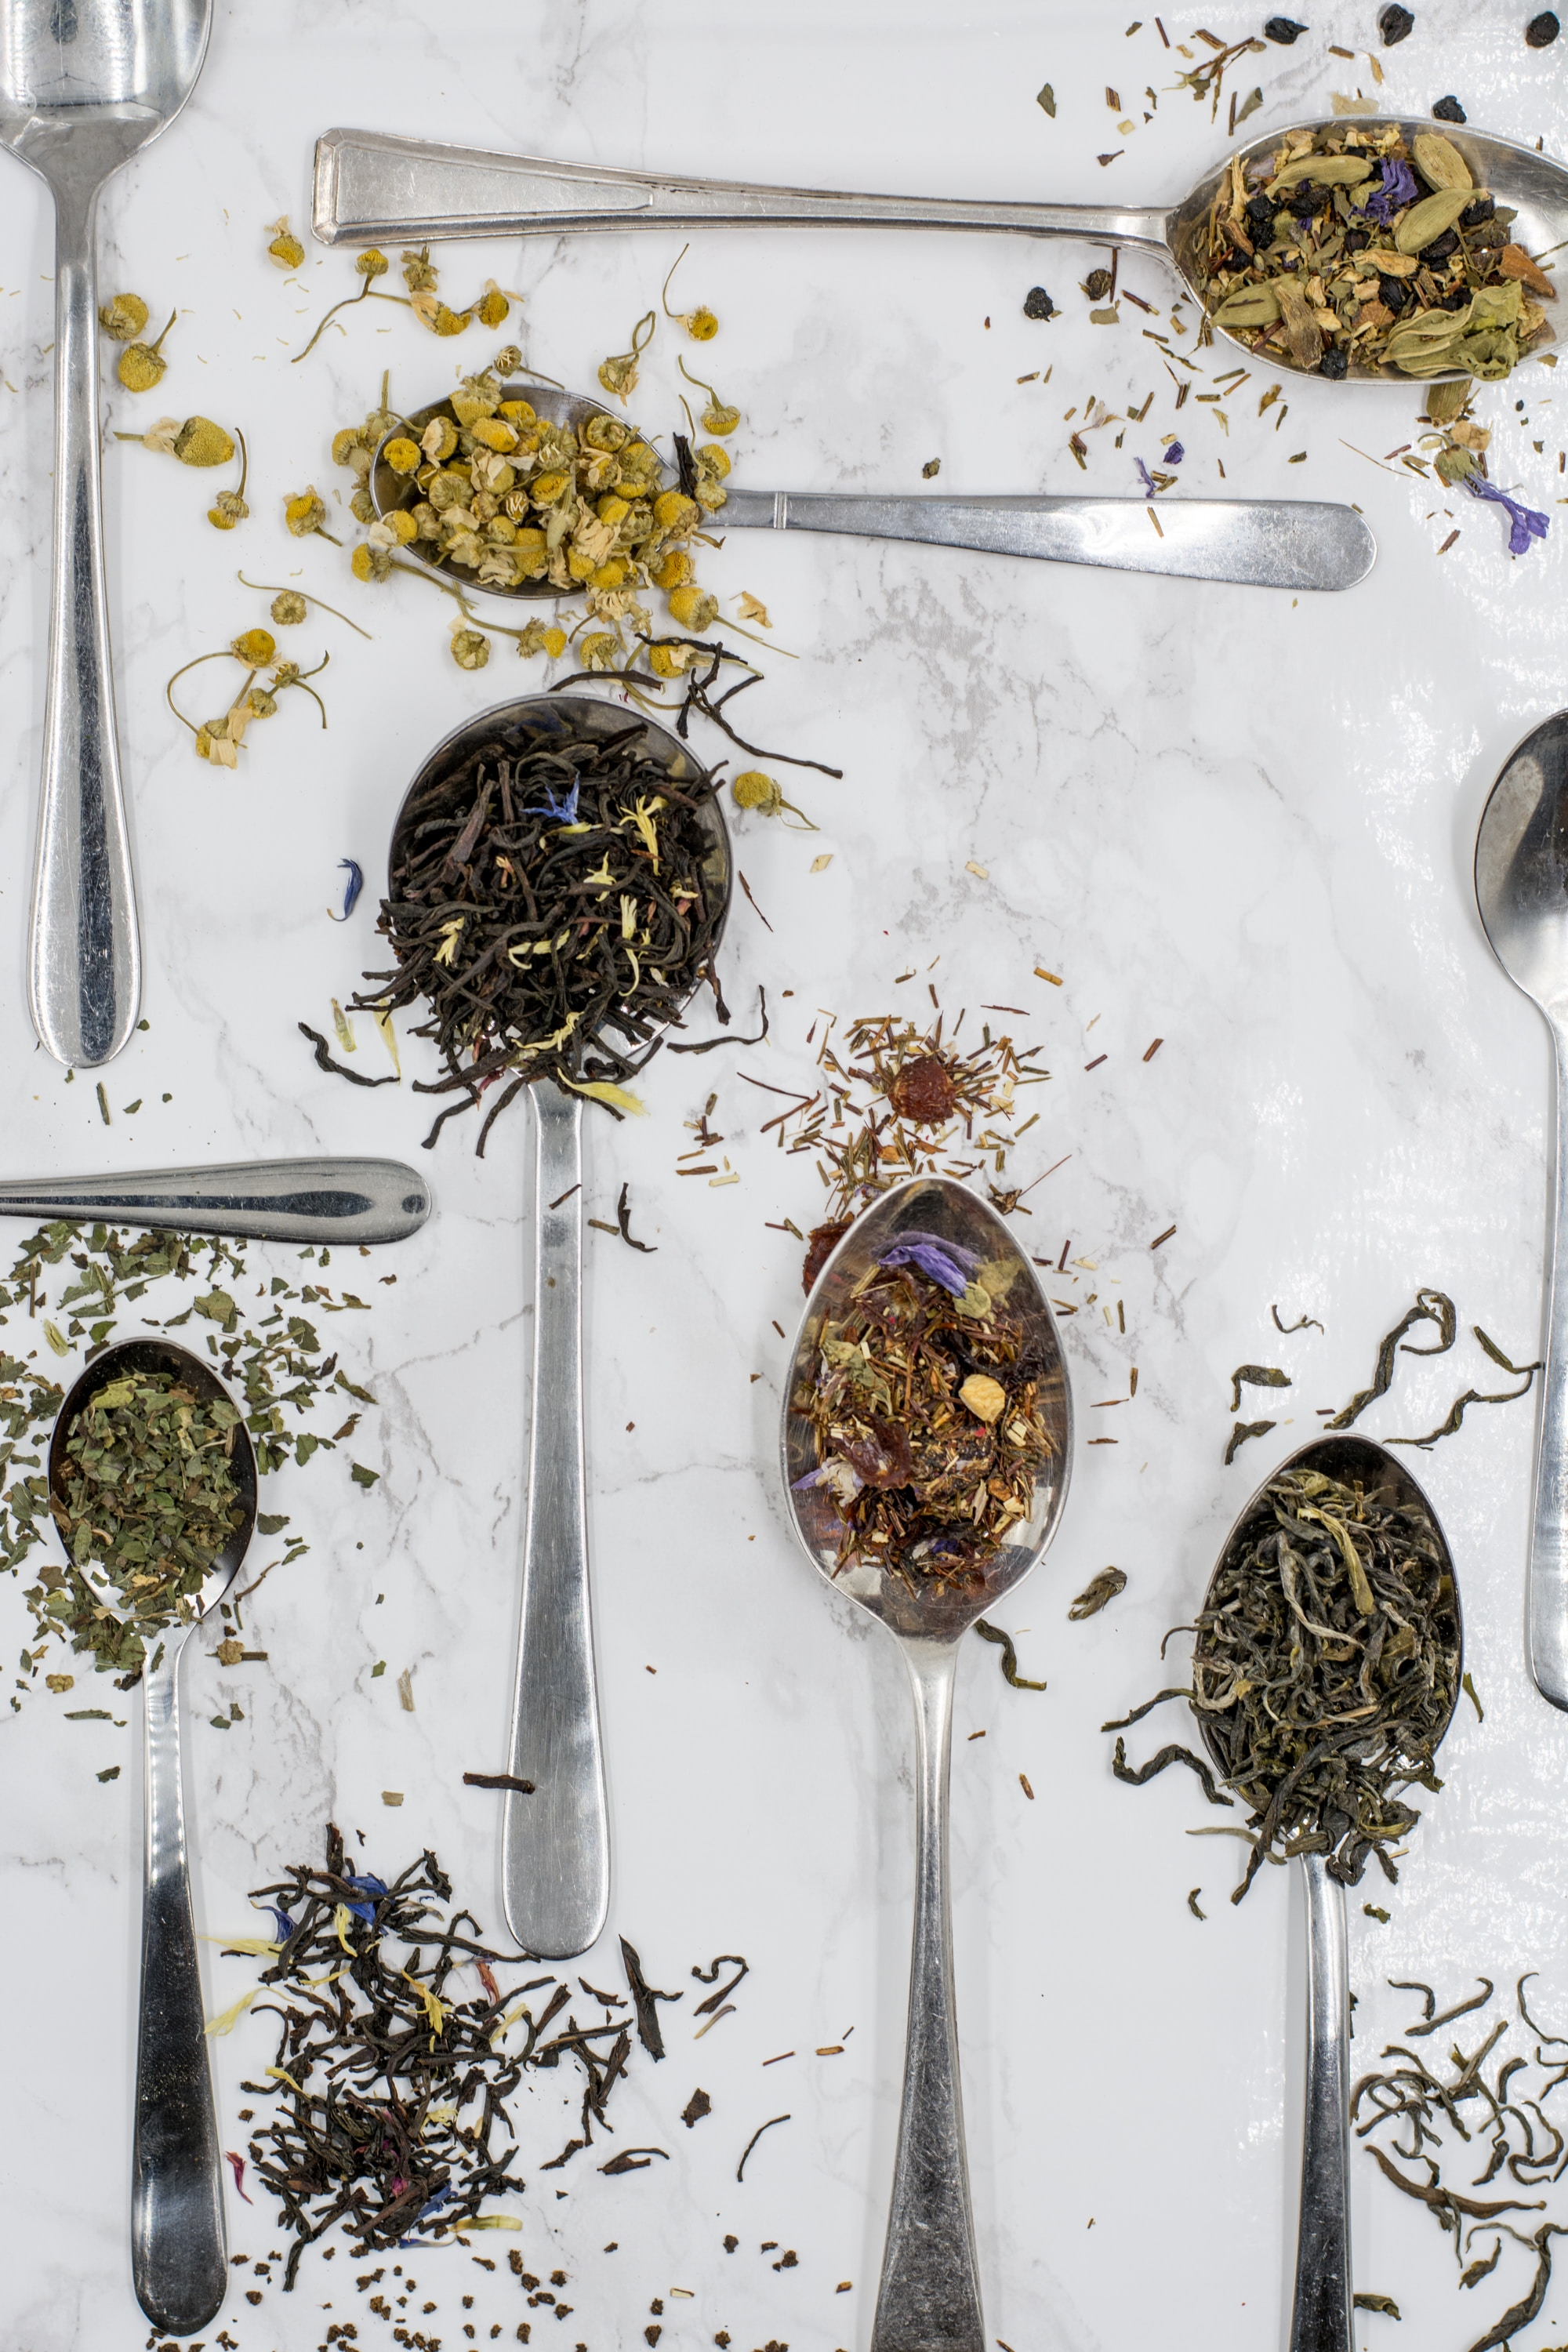 herbal teas on spoons